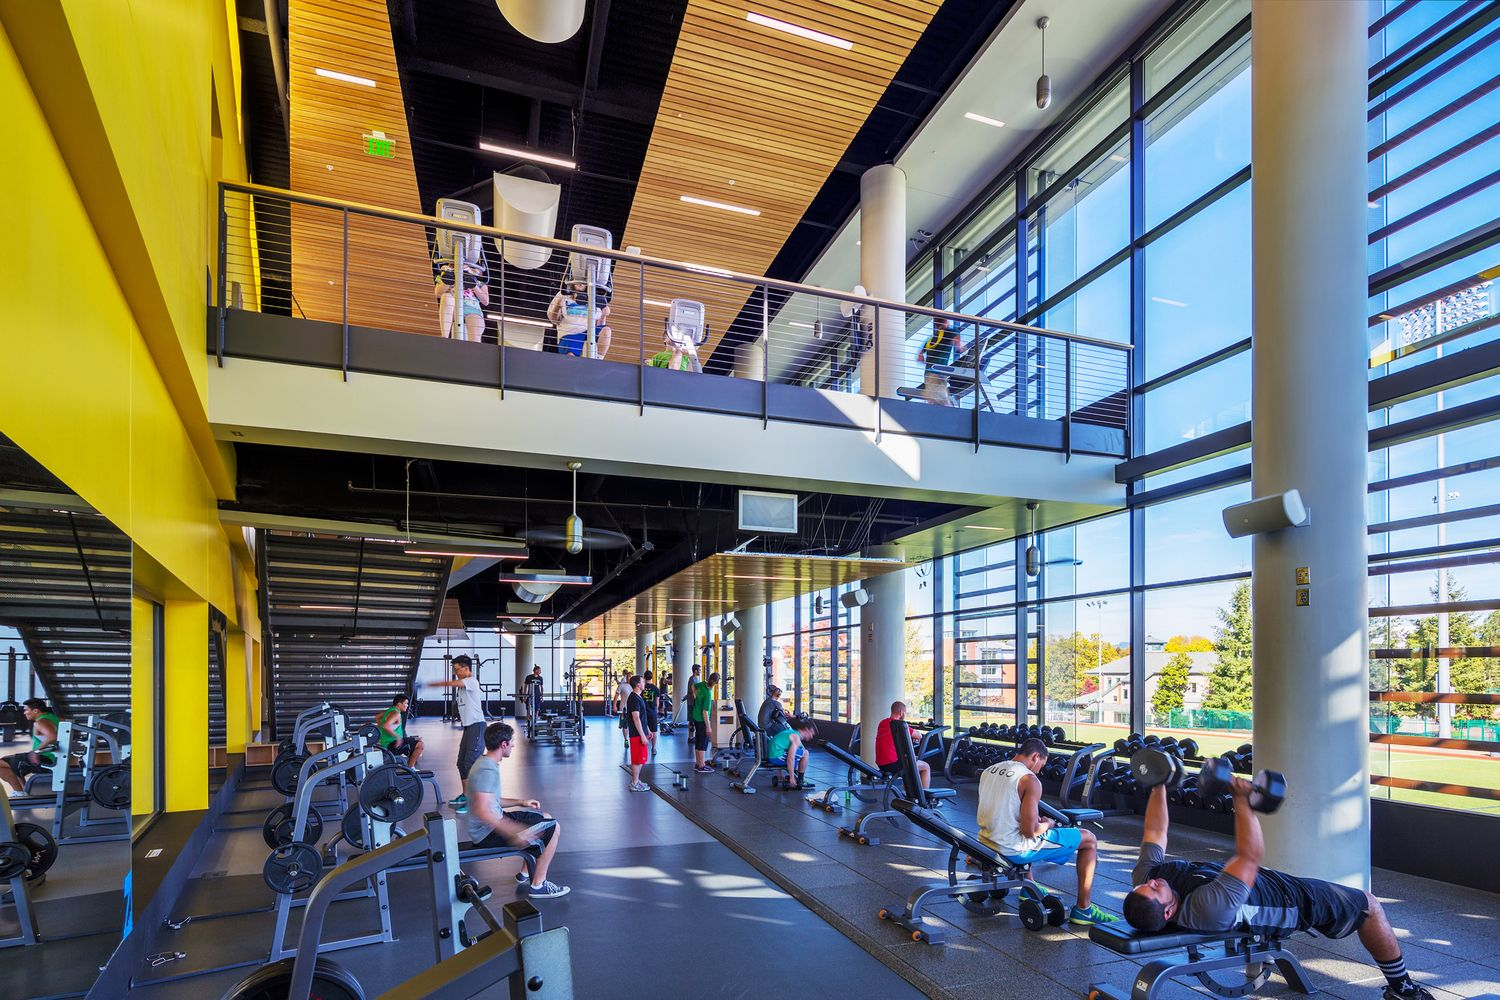 Gallery of Student Recreation Center Expansion and